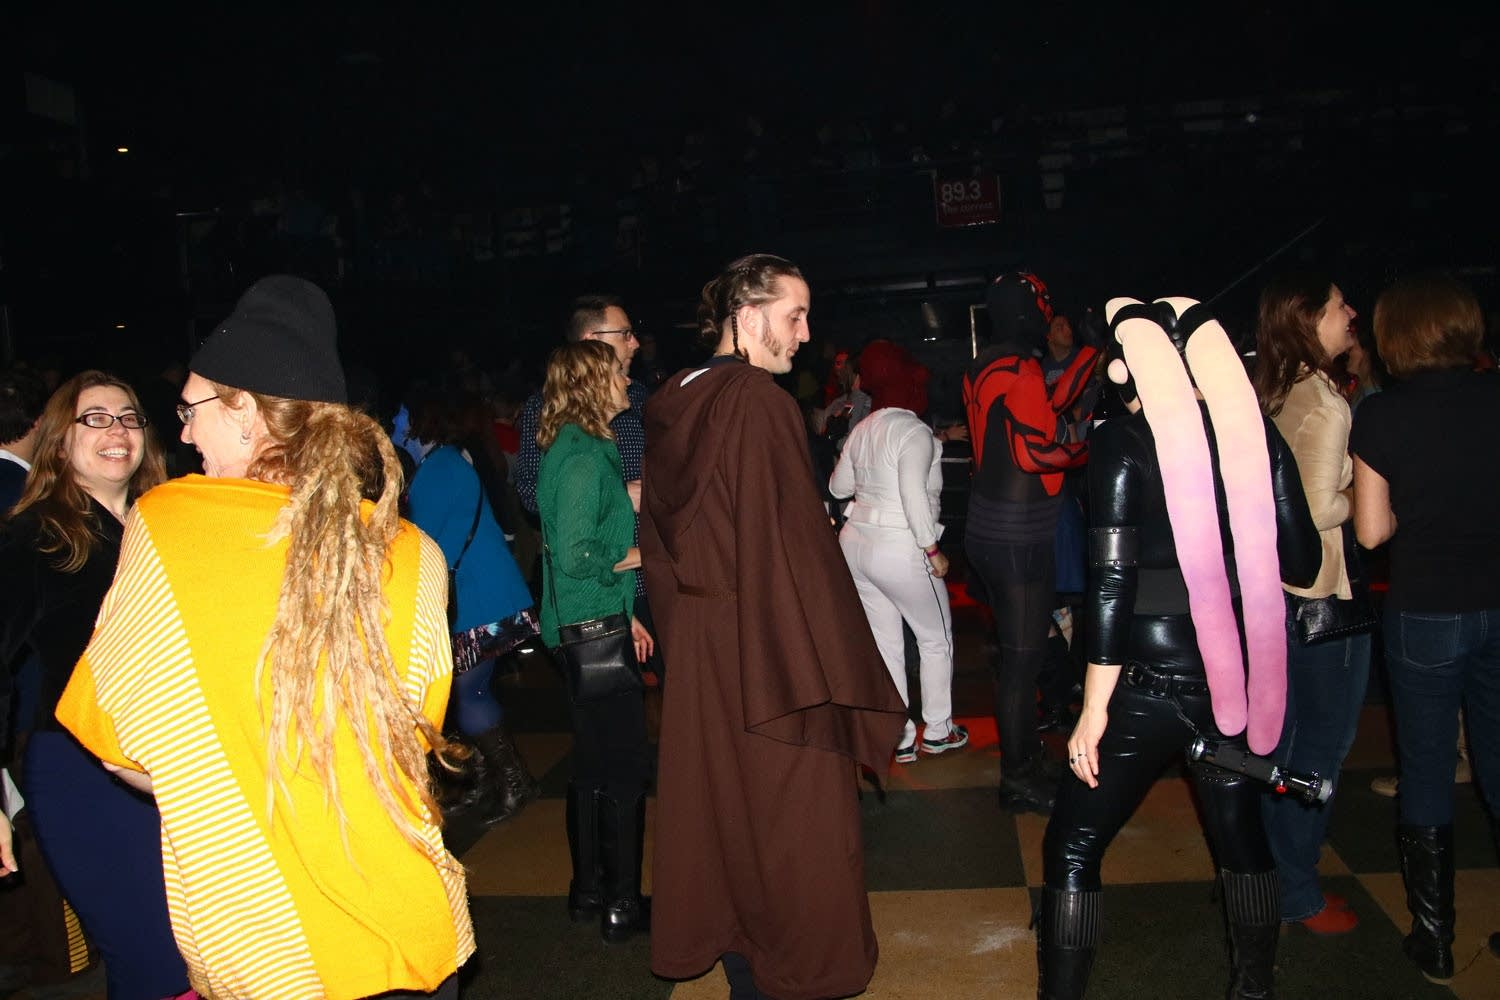 Star Wars fans at First Avenue